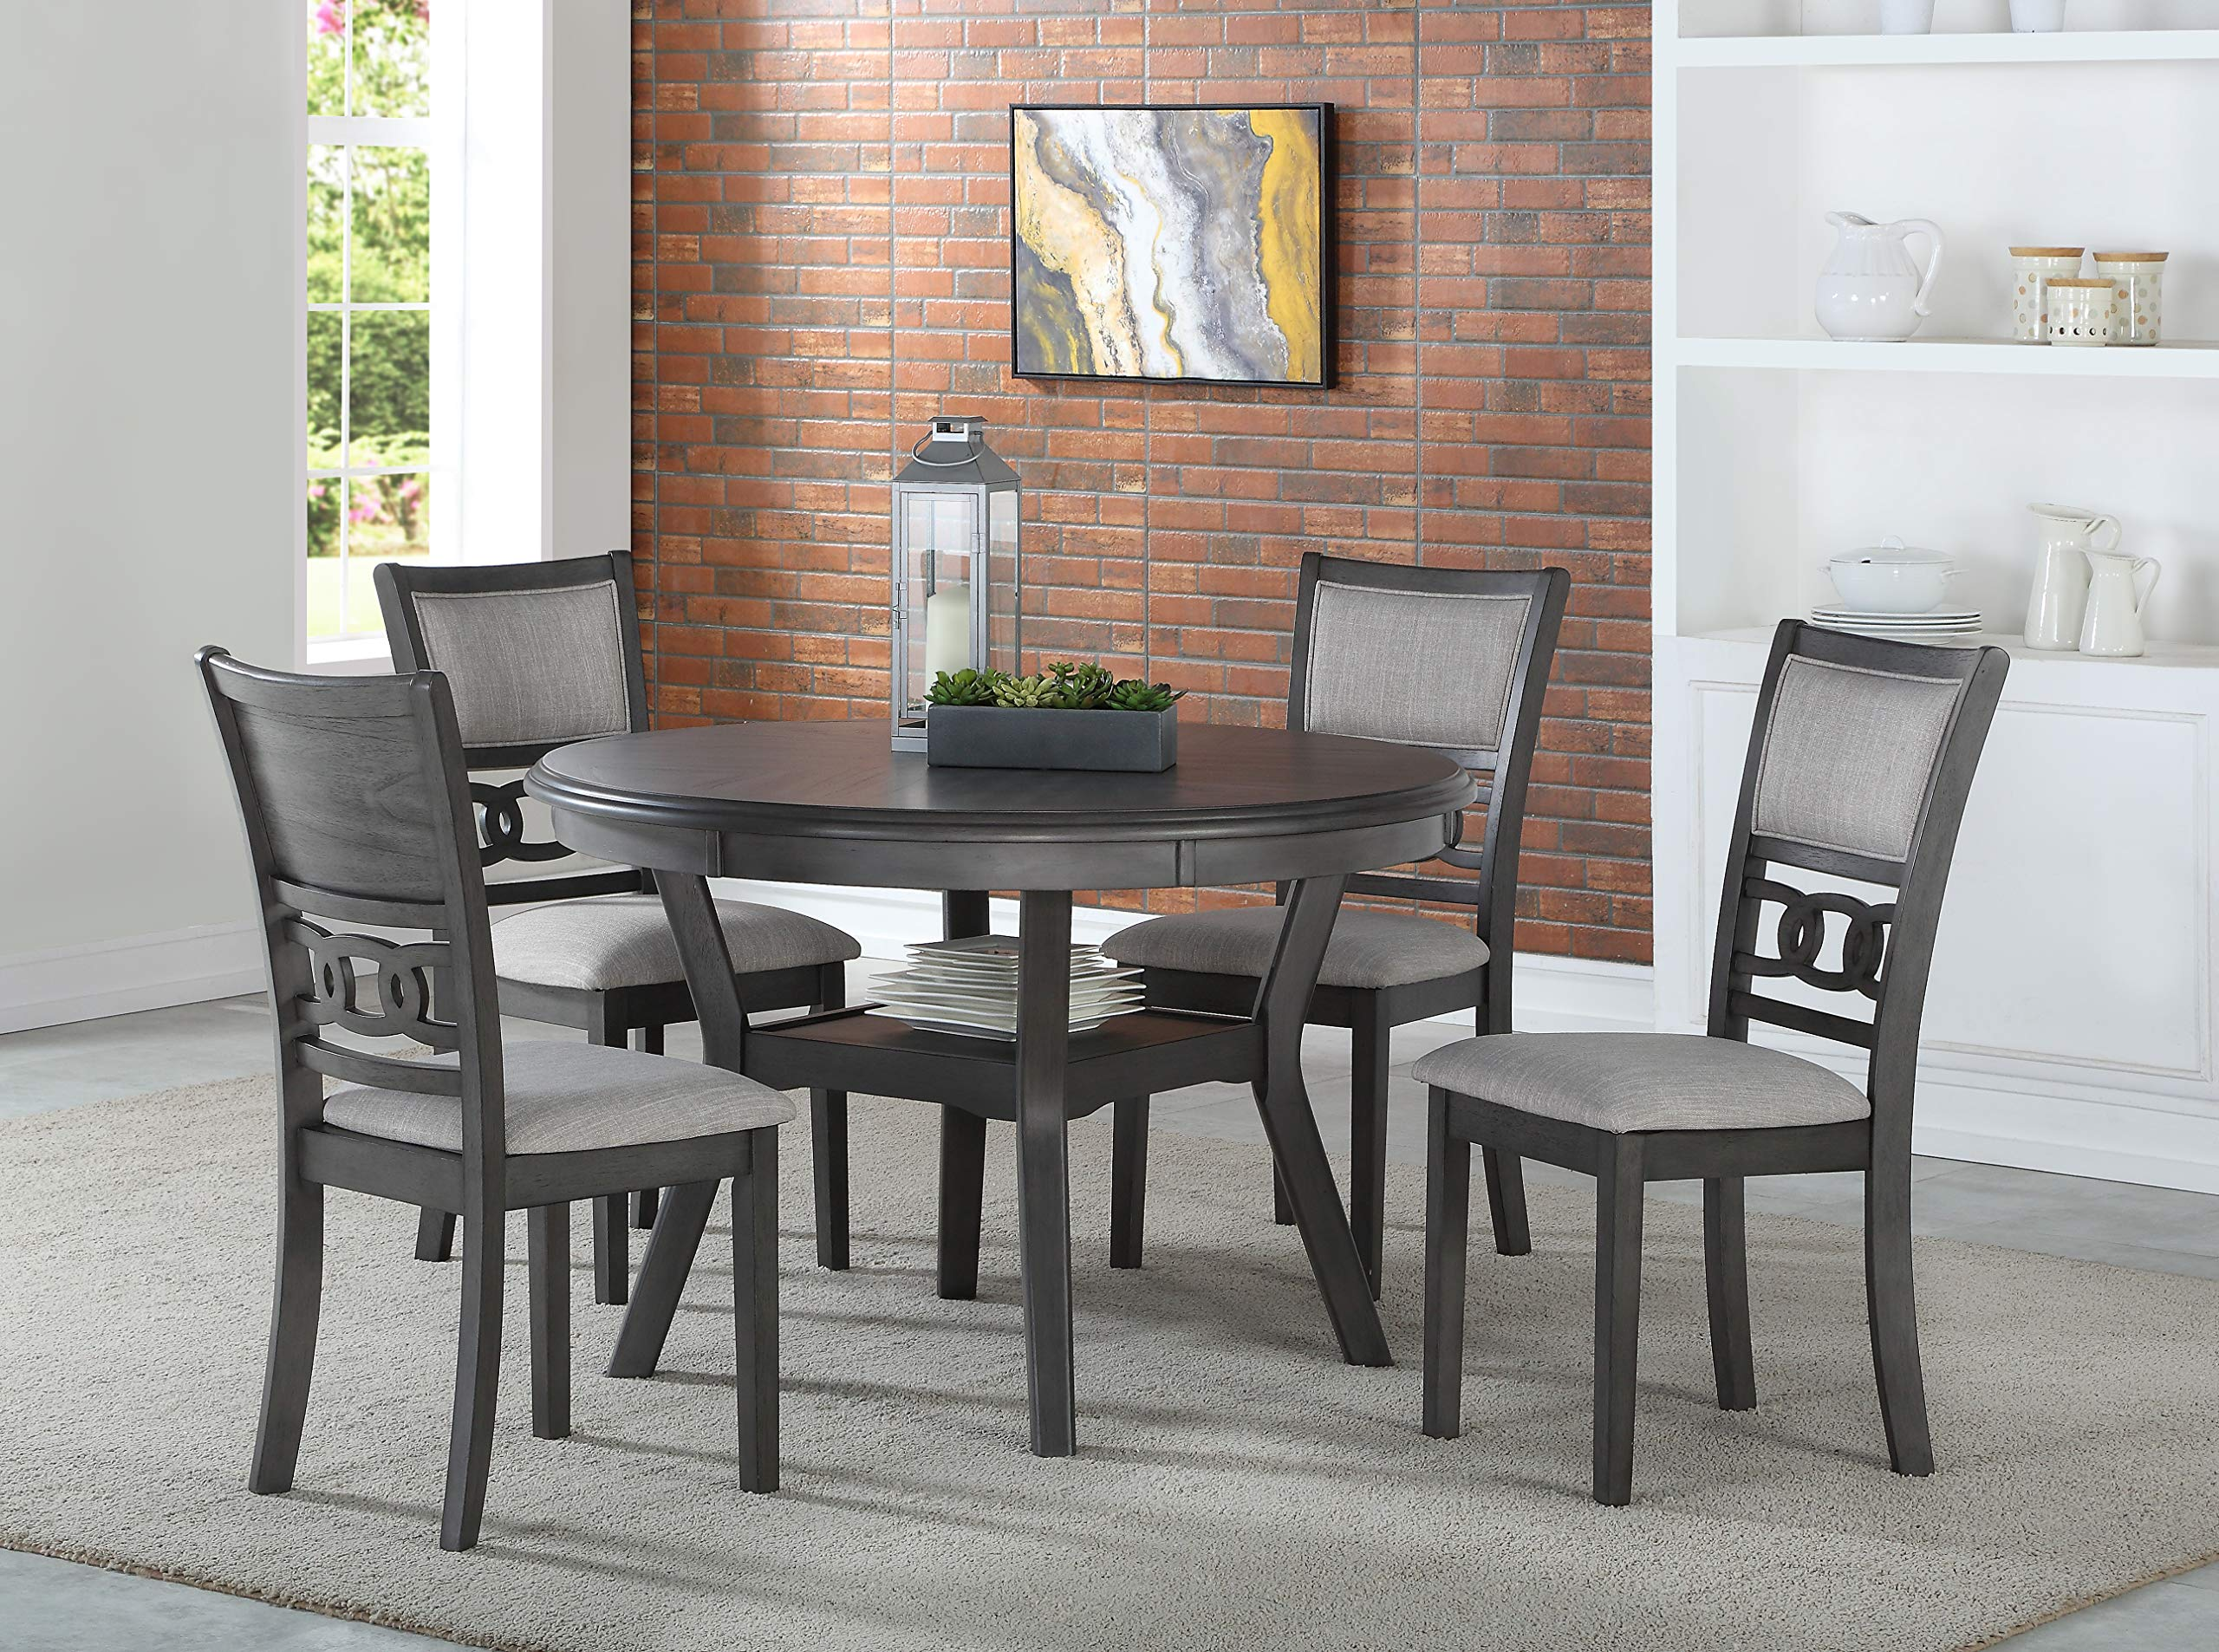 New Classic Furniture D1701-50S-GRY Gia Round Dining Set, Gray by New Classic Furniture